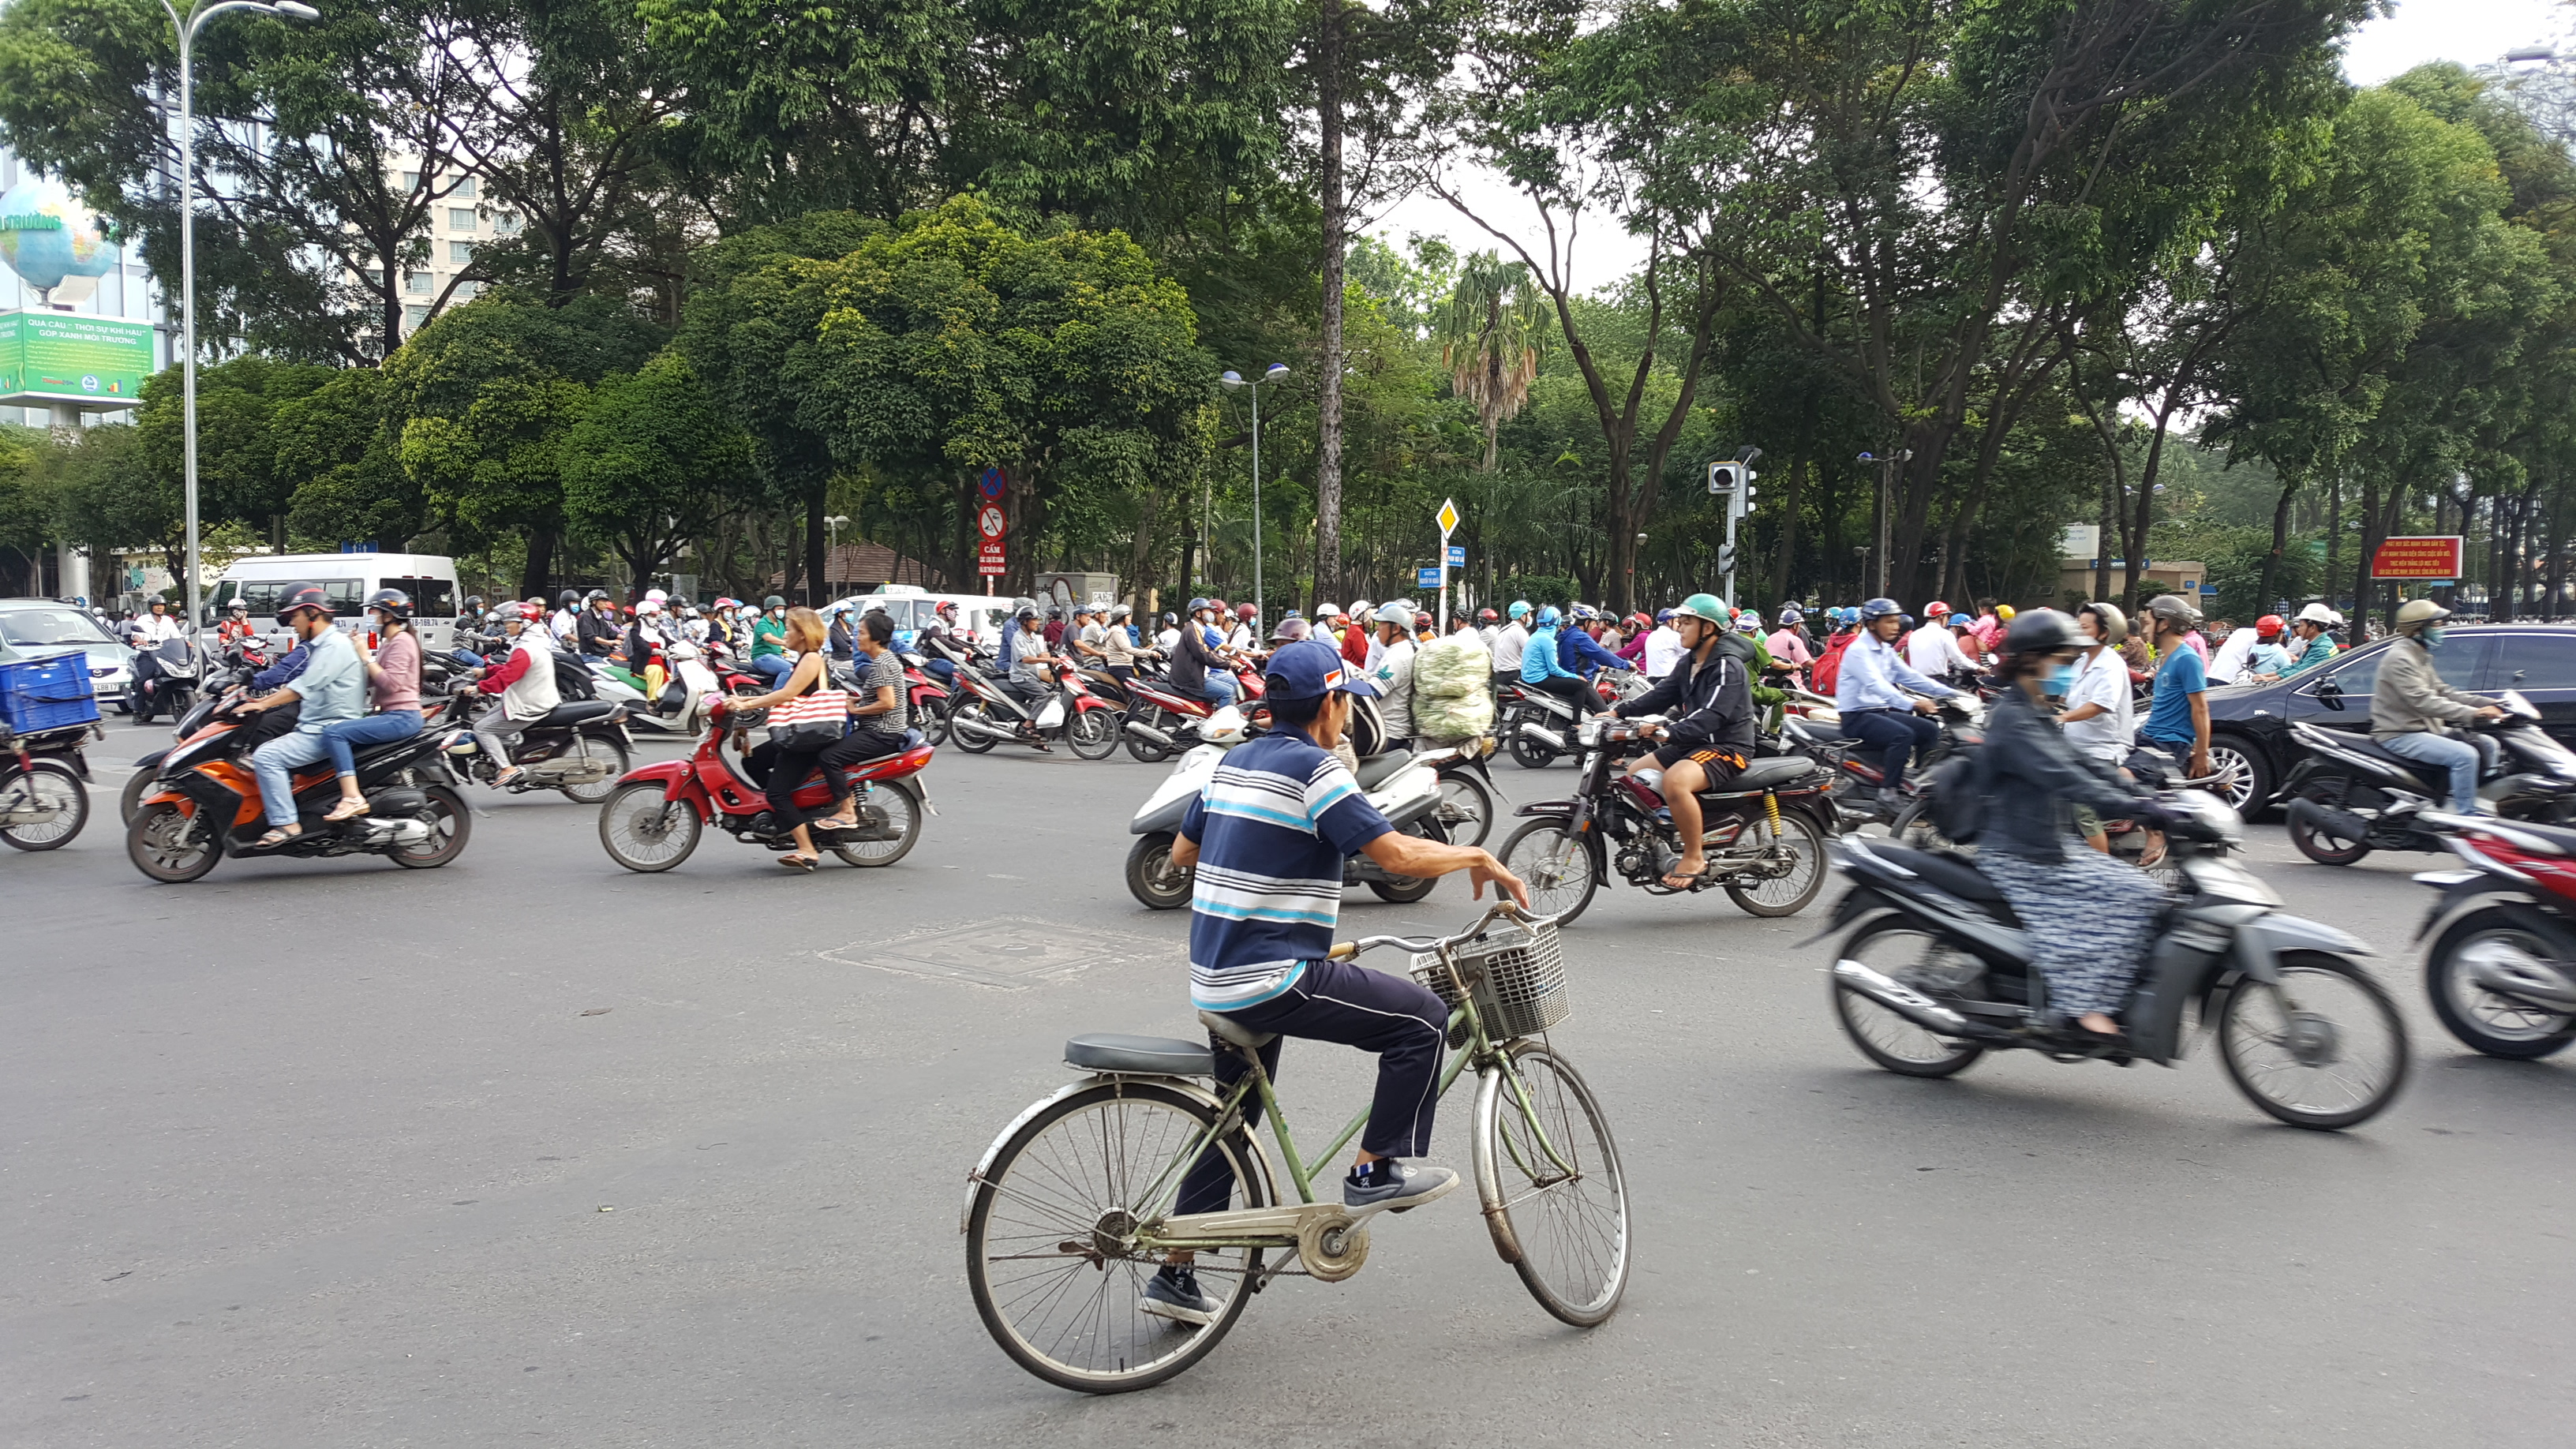 A busy junction with scooters driving in all directions